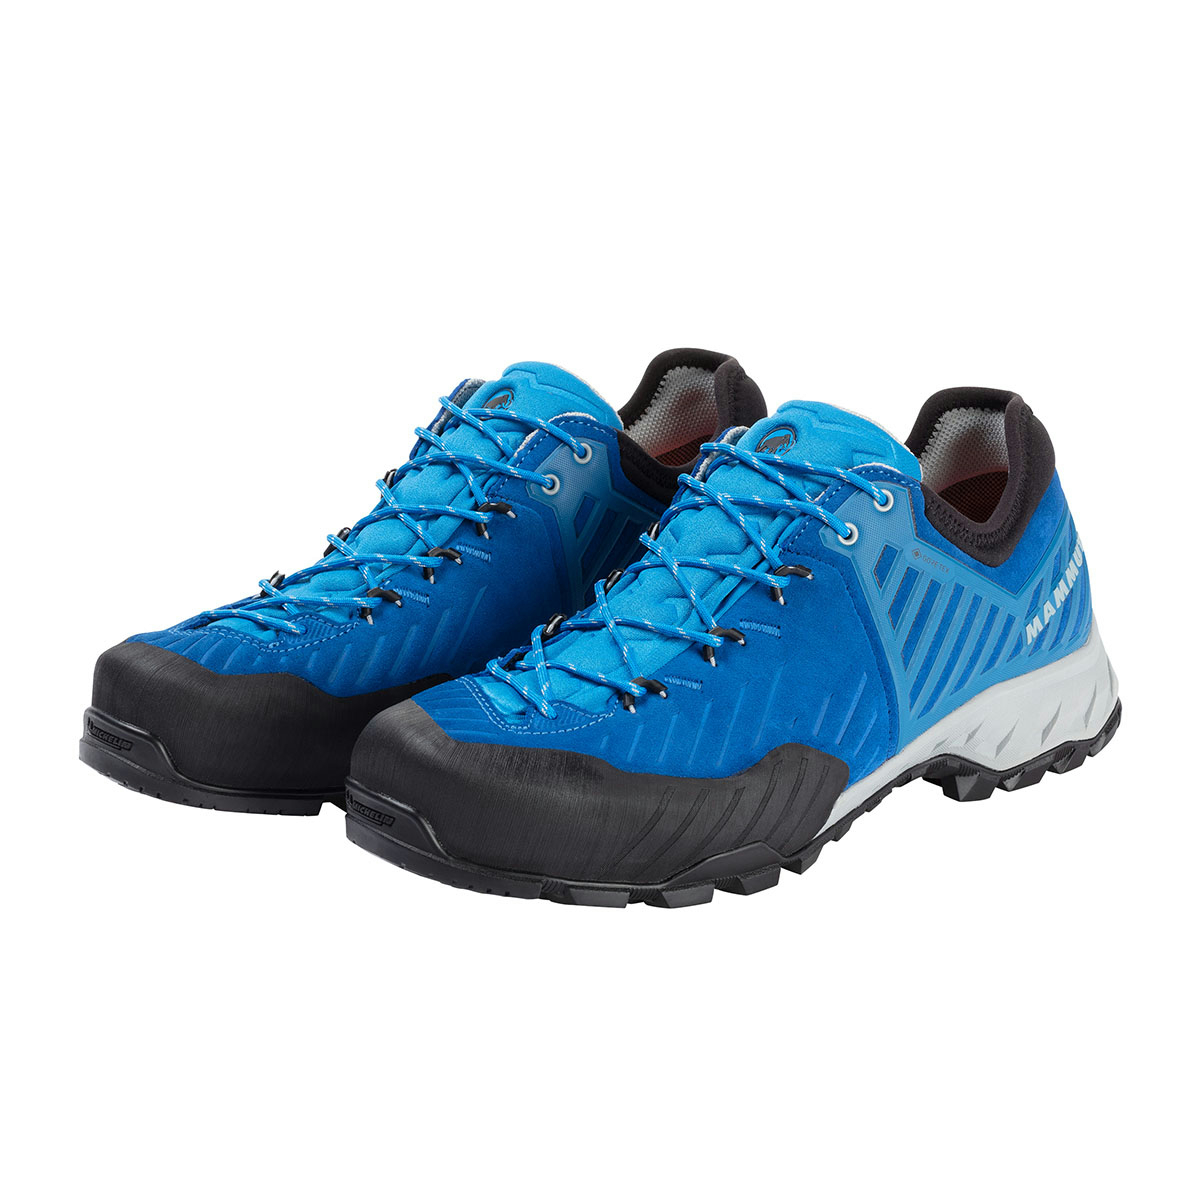 Alnasca II Low GTX Men blau